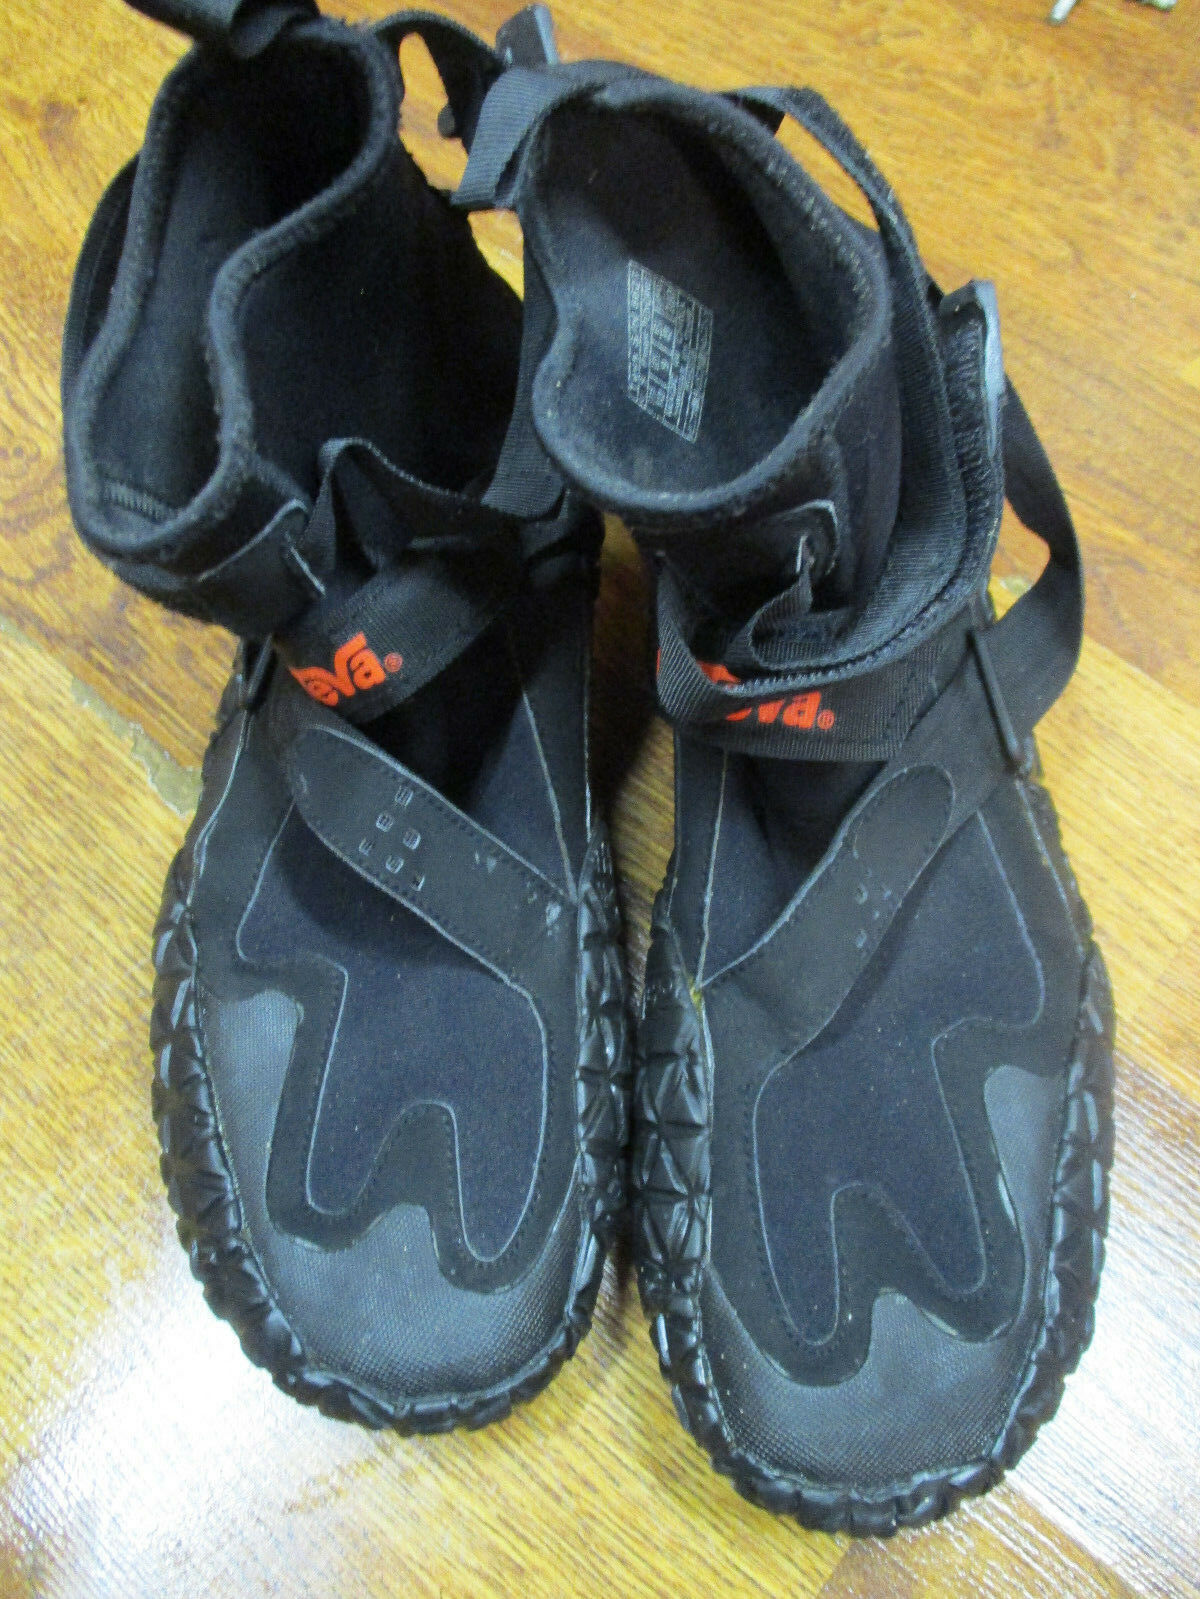 TEVE SIDEWINDER S N 6627 BOOTS SIZE 10